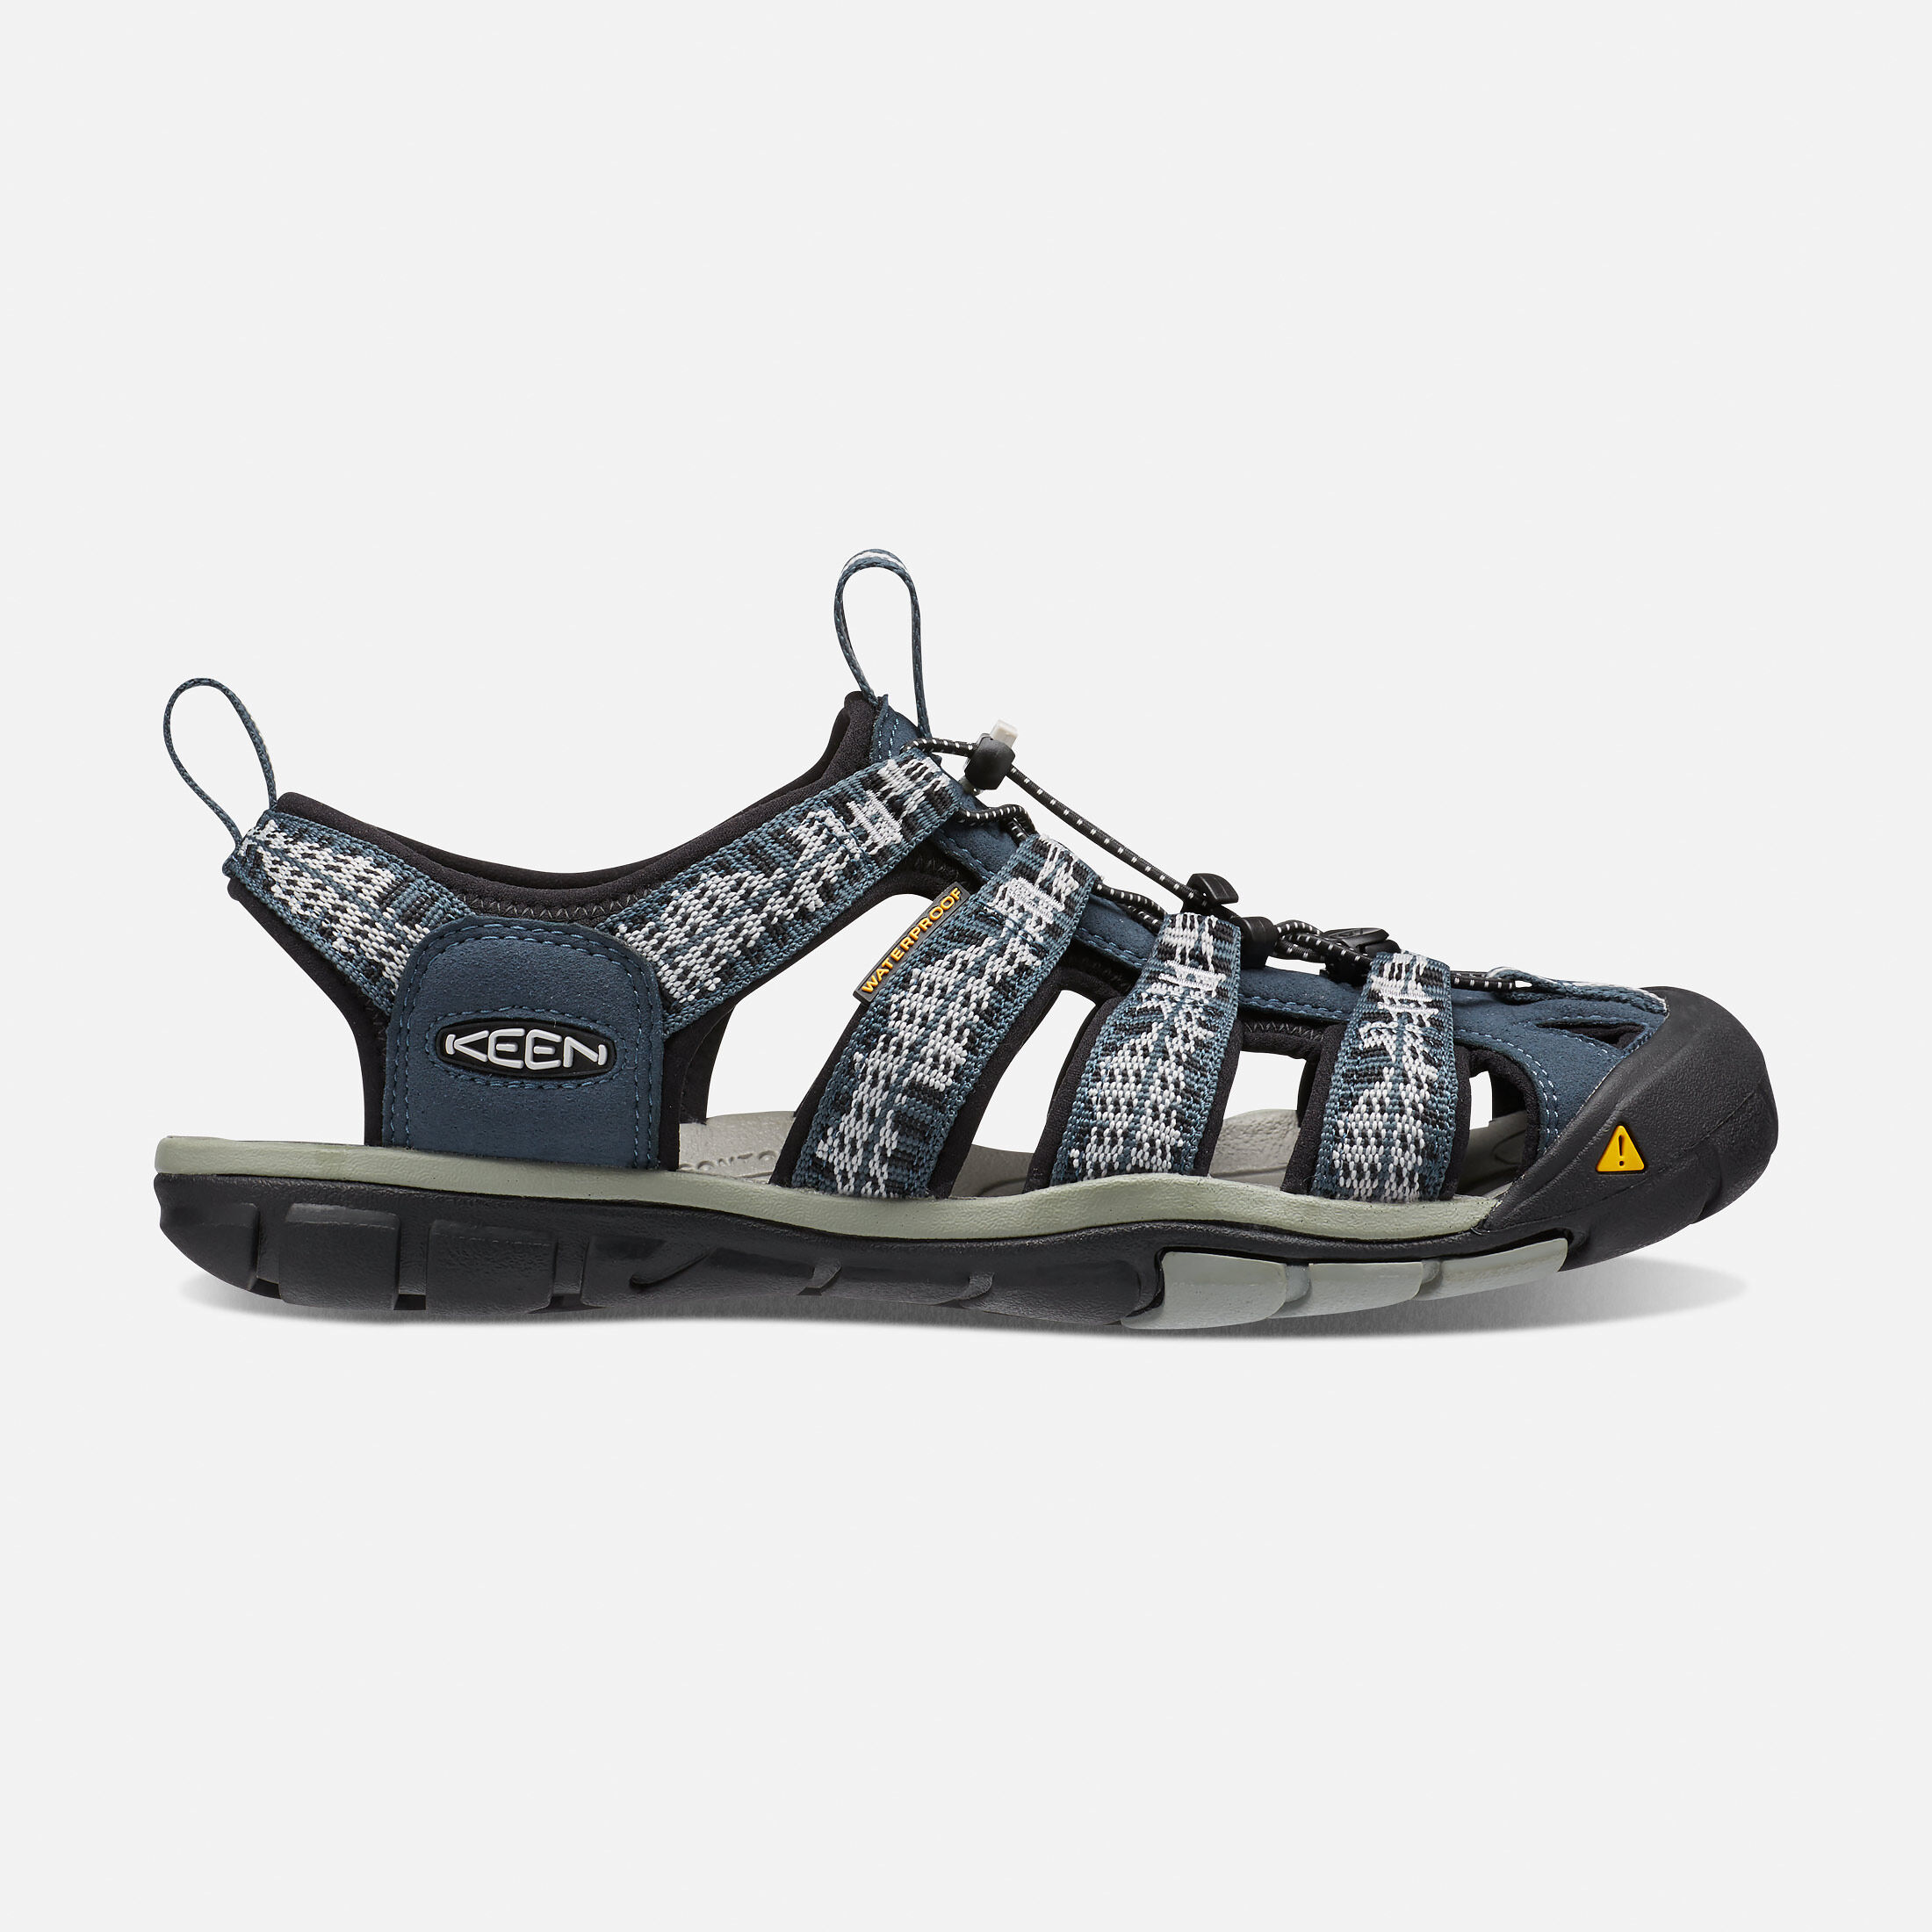 Keen Mens Clearwater CNX Walking Sandal Grey Sports Outdoors Breathable